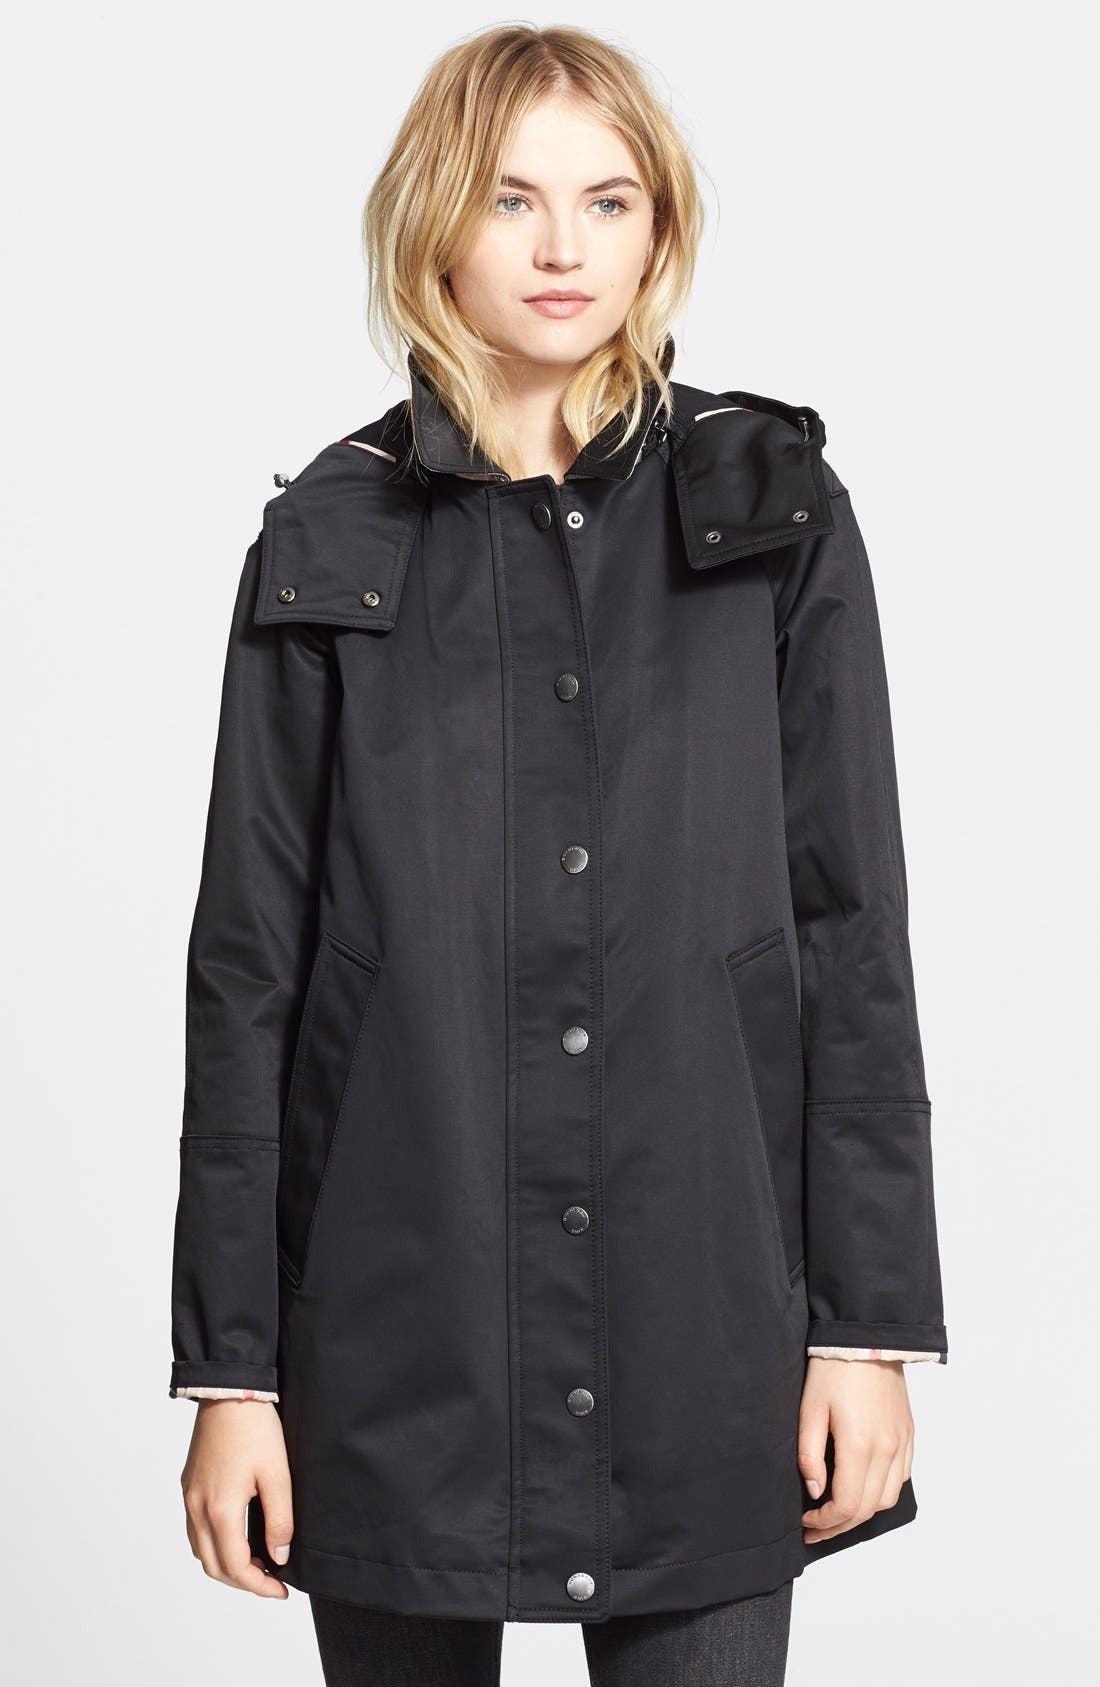 'Bowpark' Raincoat with Liner,                             Alternate thumbnail 3, color,                             001